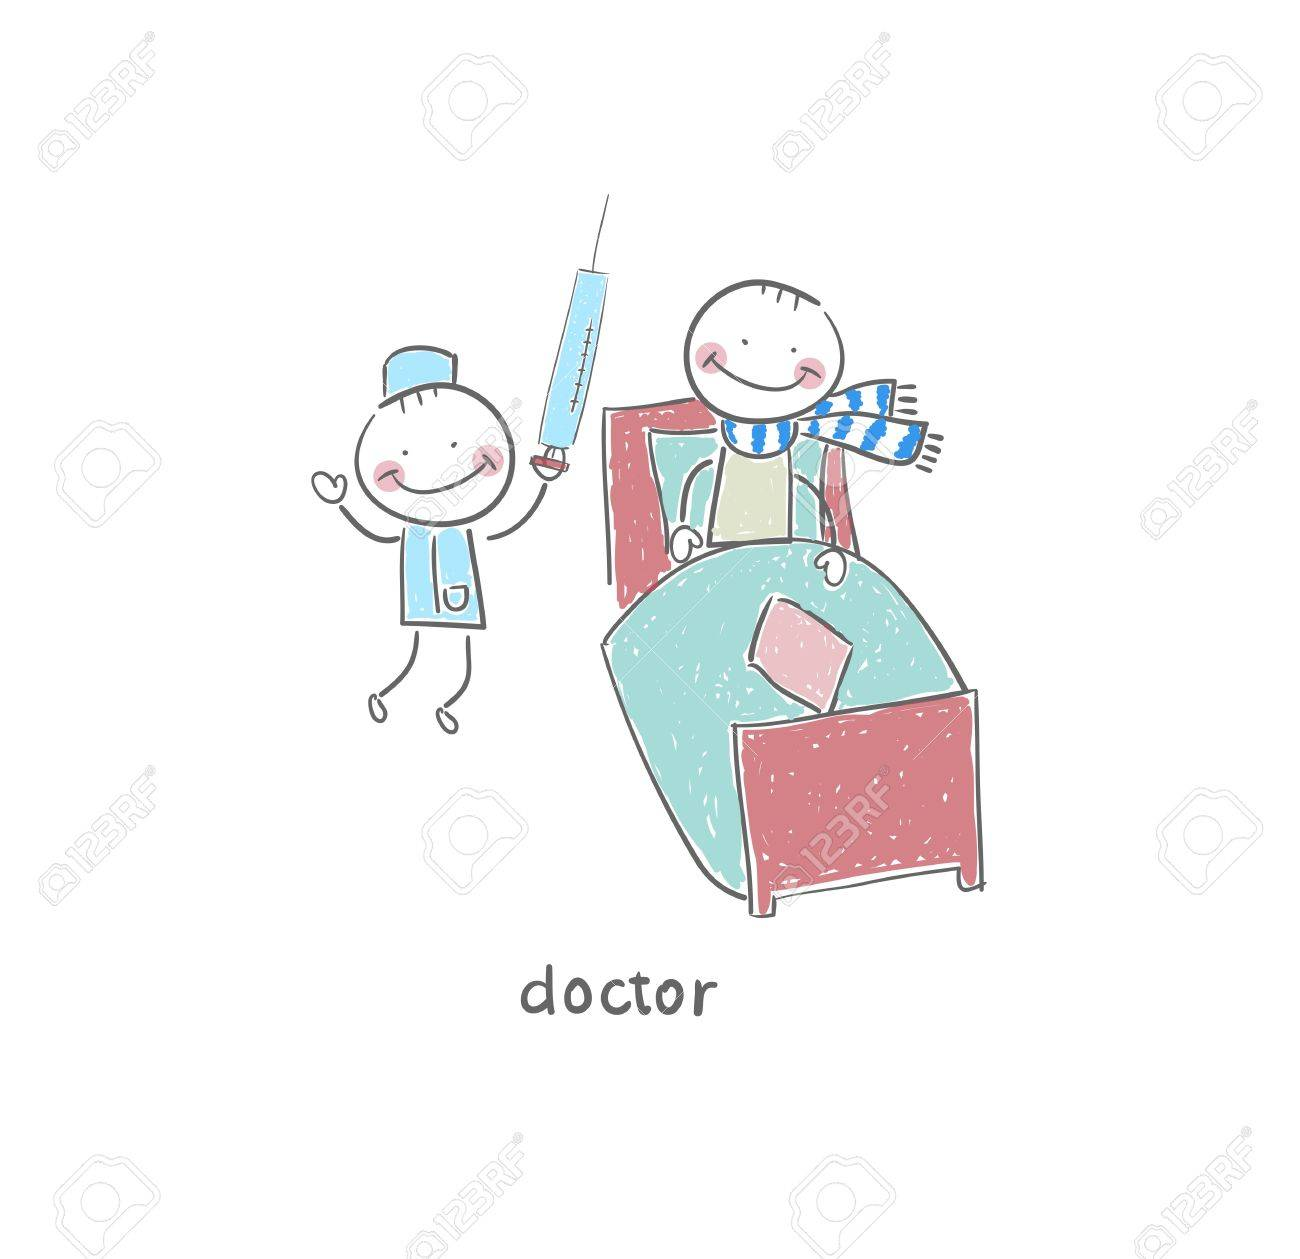 Doctor and patient. Illustration. Stock Illustration - 18716891